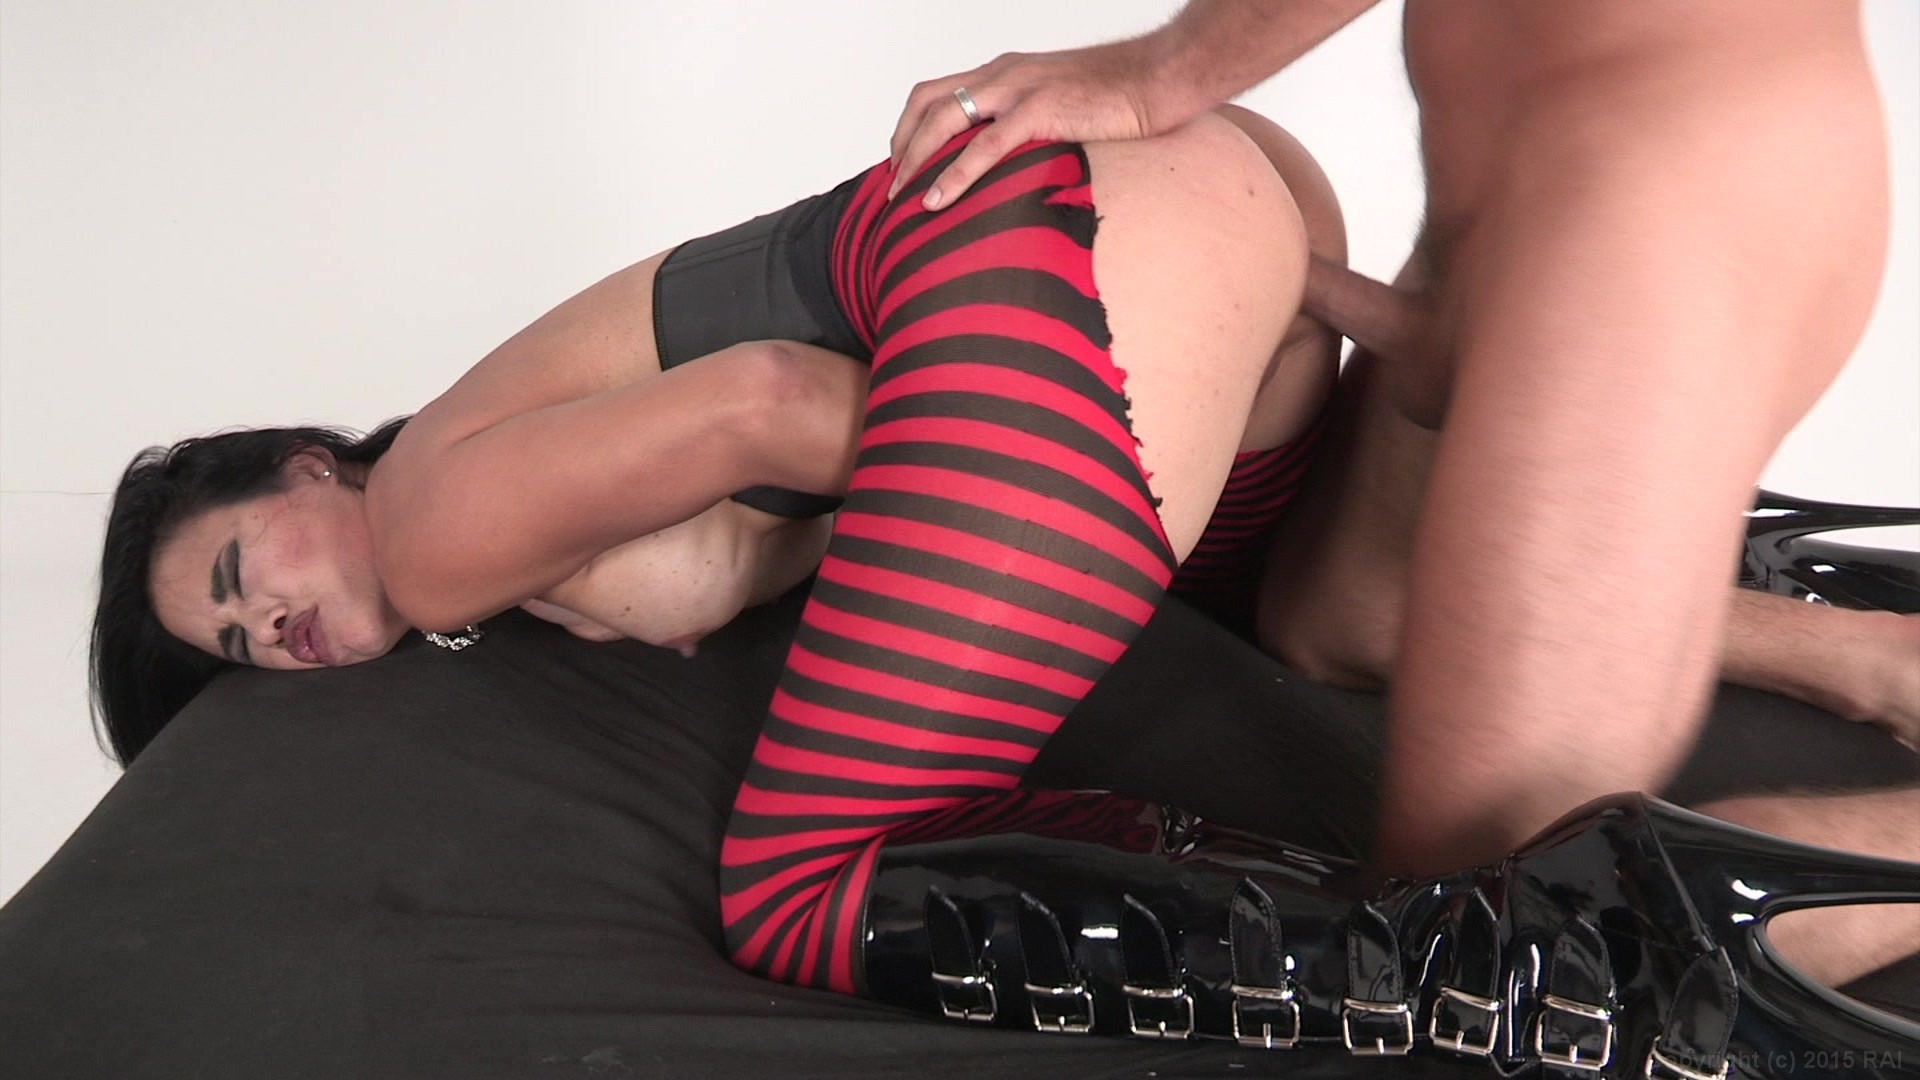 Scene with Mick Blue and Dana Vespoli - image 19 out of 20